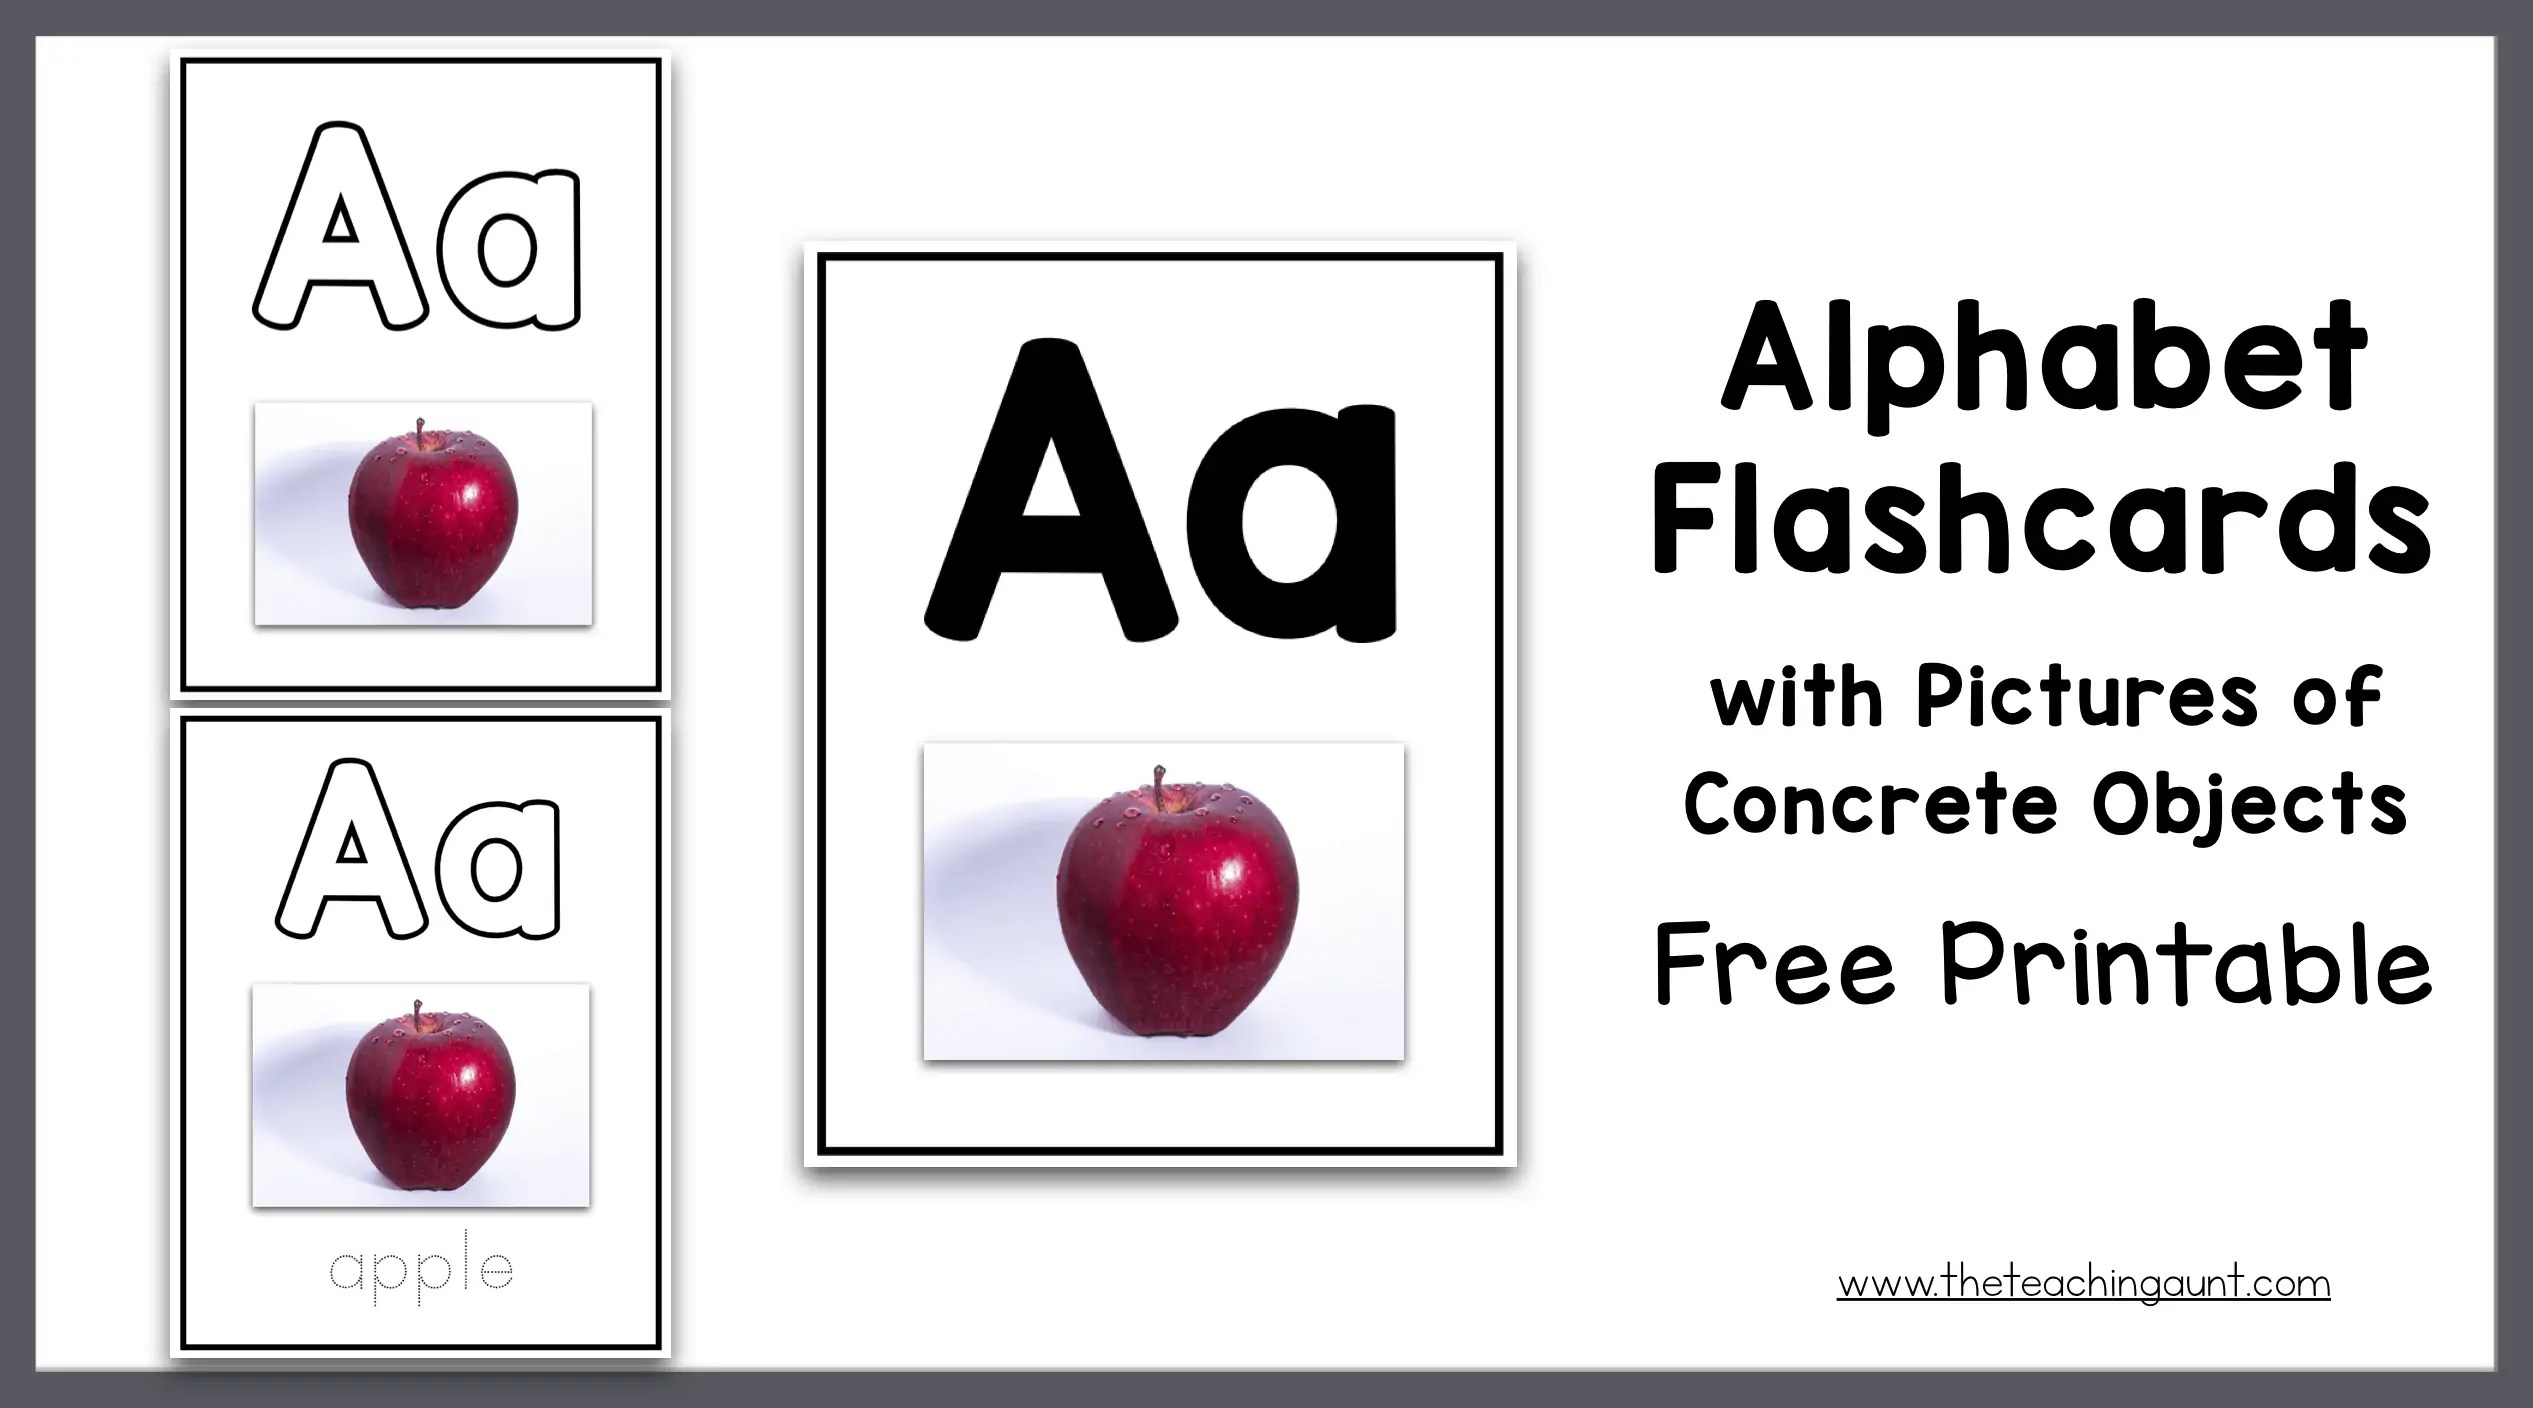 photo about Letter Flashcards Printable identified as Alphabet Flashcards with Pics of Concrete Goods - The